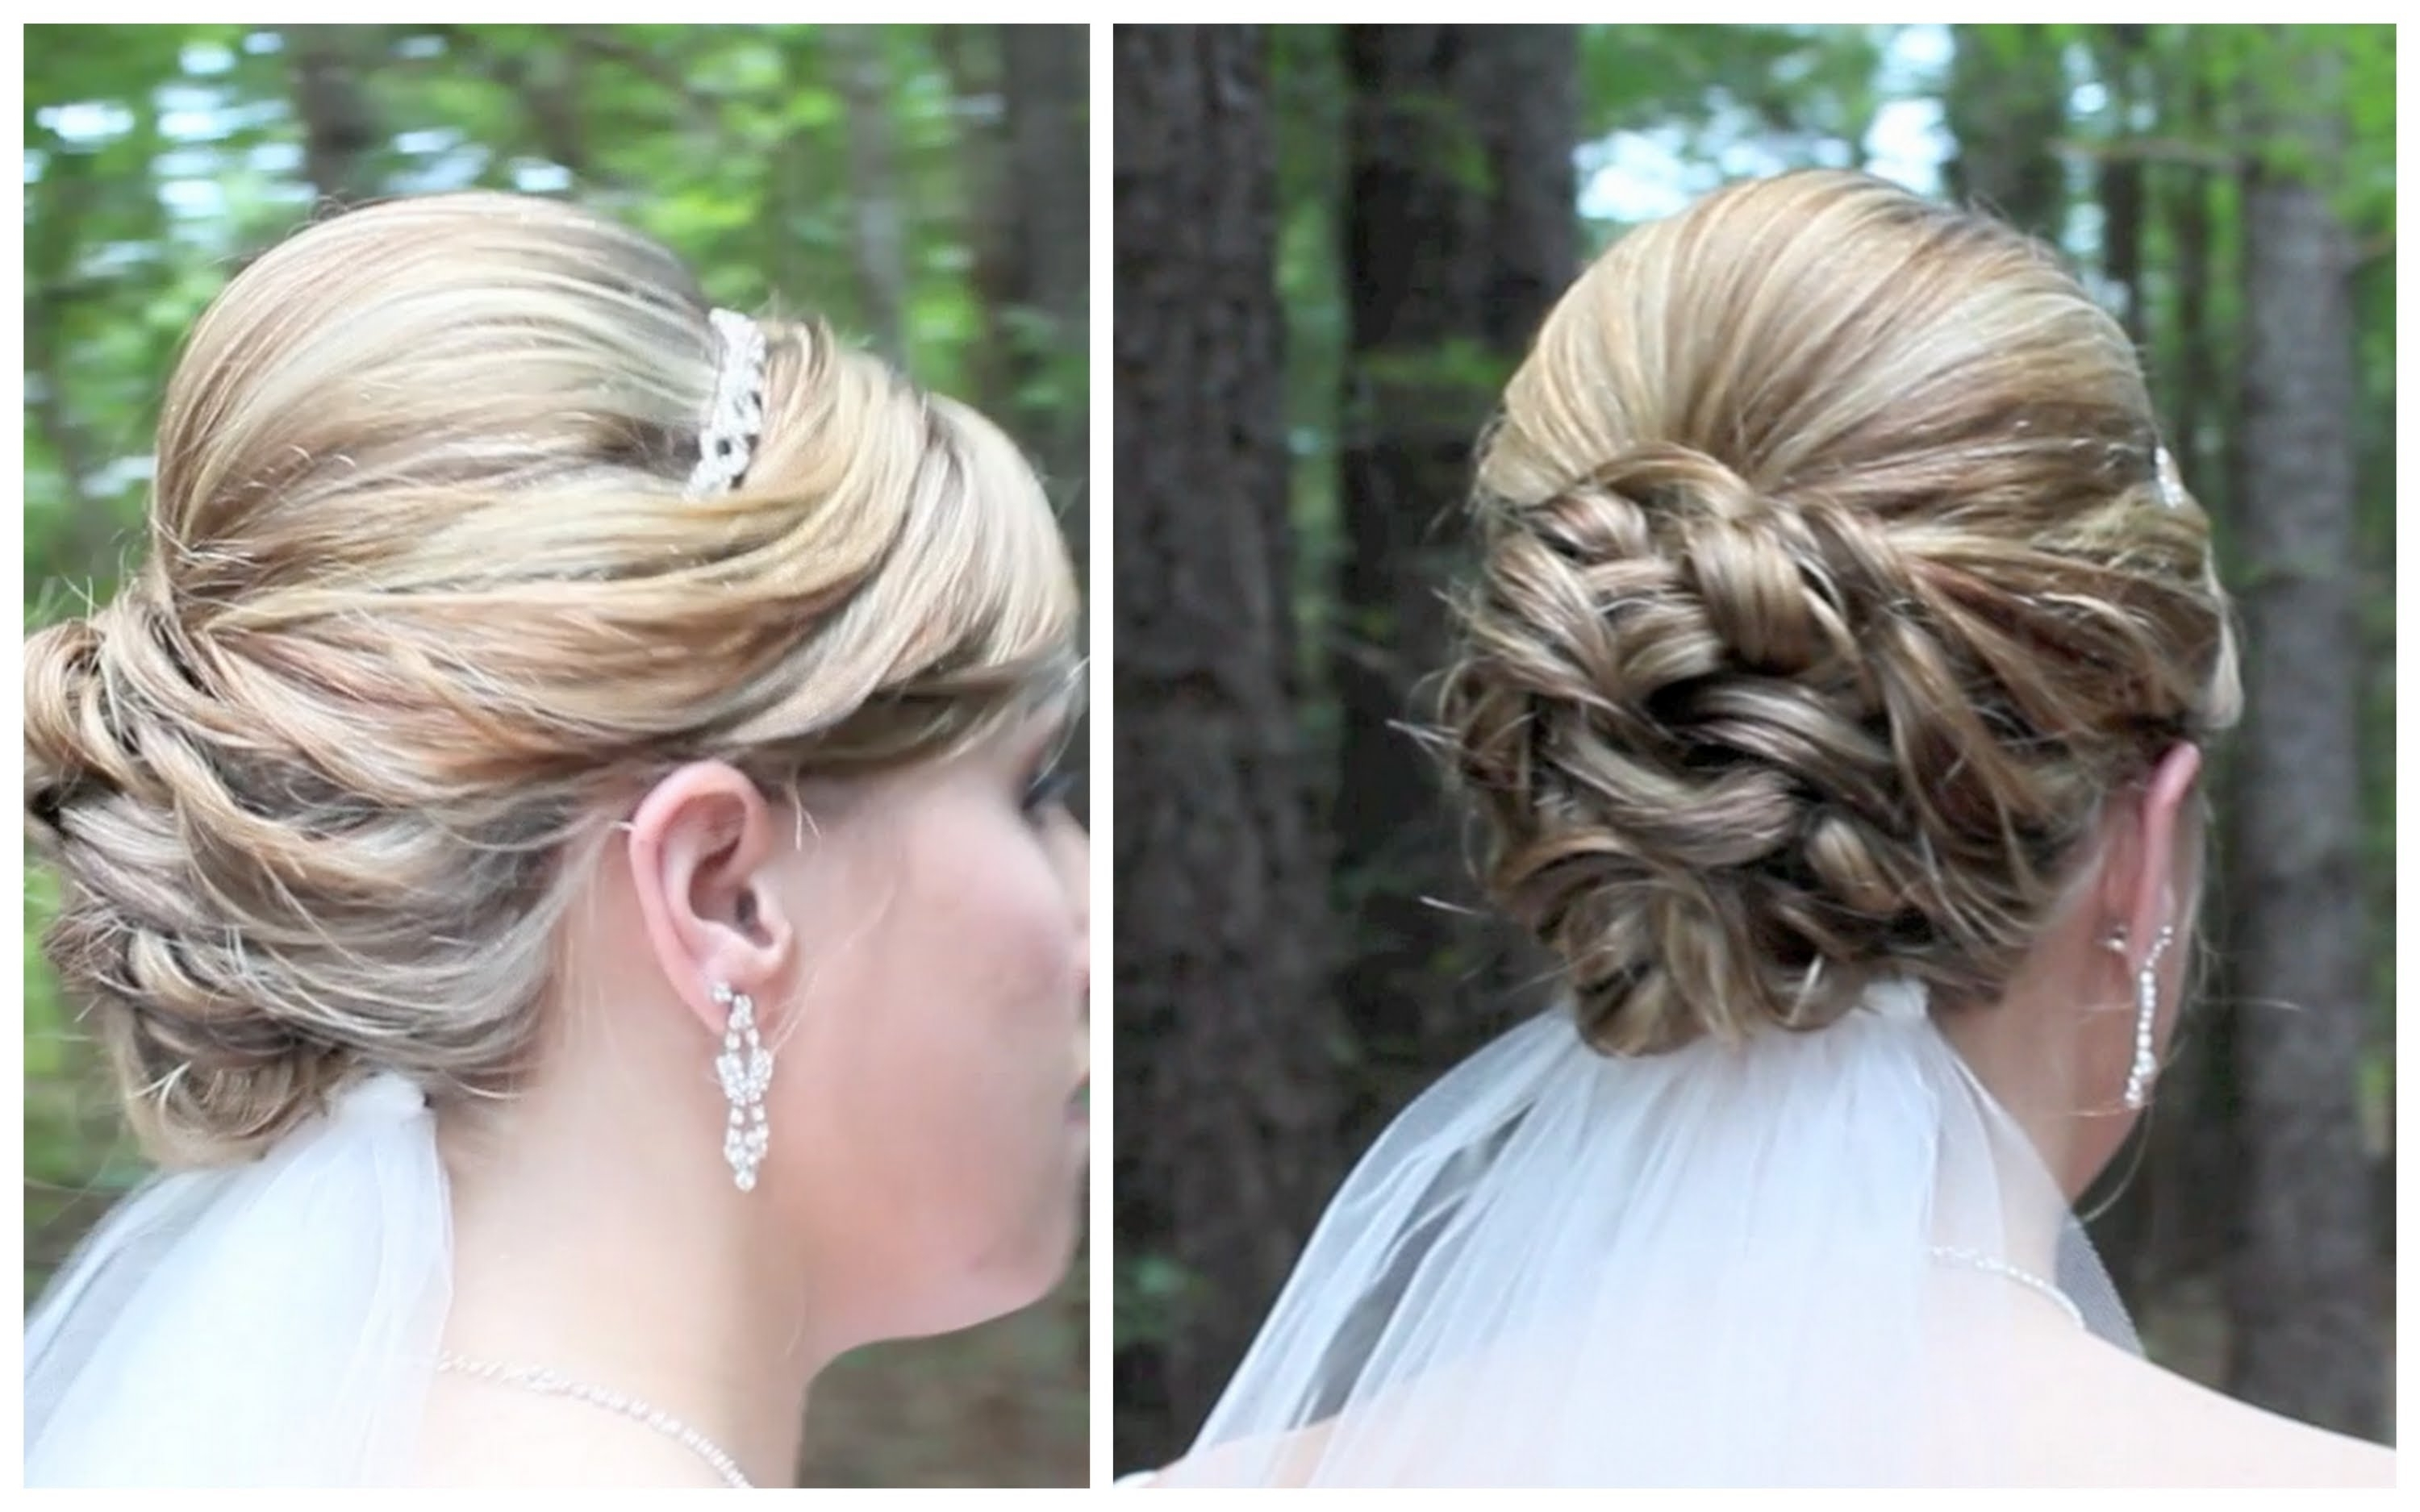 Most Recent Elegant Wedding Hairstyles For Medium Length Hair In Bridal Updo On Shoulder Length Hair – Youtube (Gallery 2 of 15)